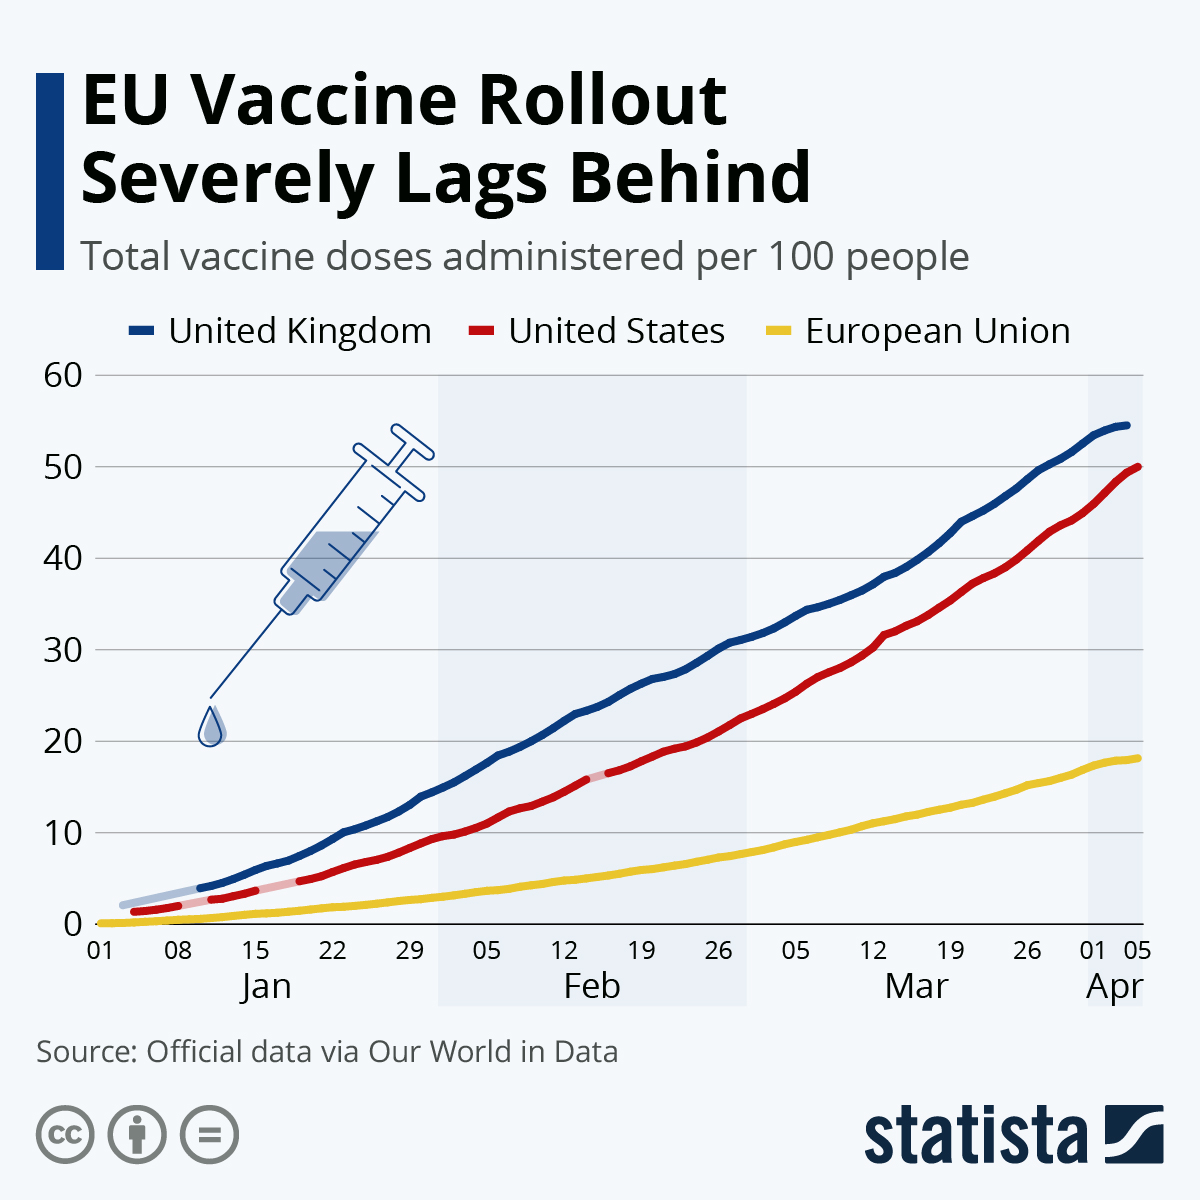 The EU has issues rolling out vaccines in a timely manner